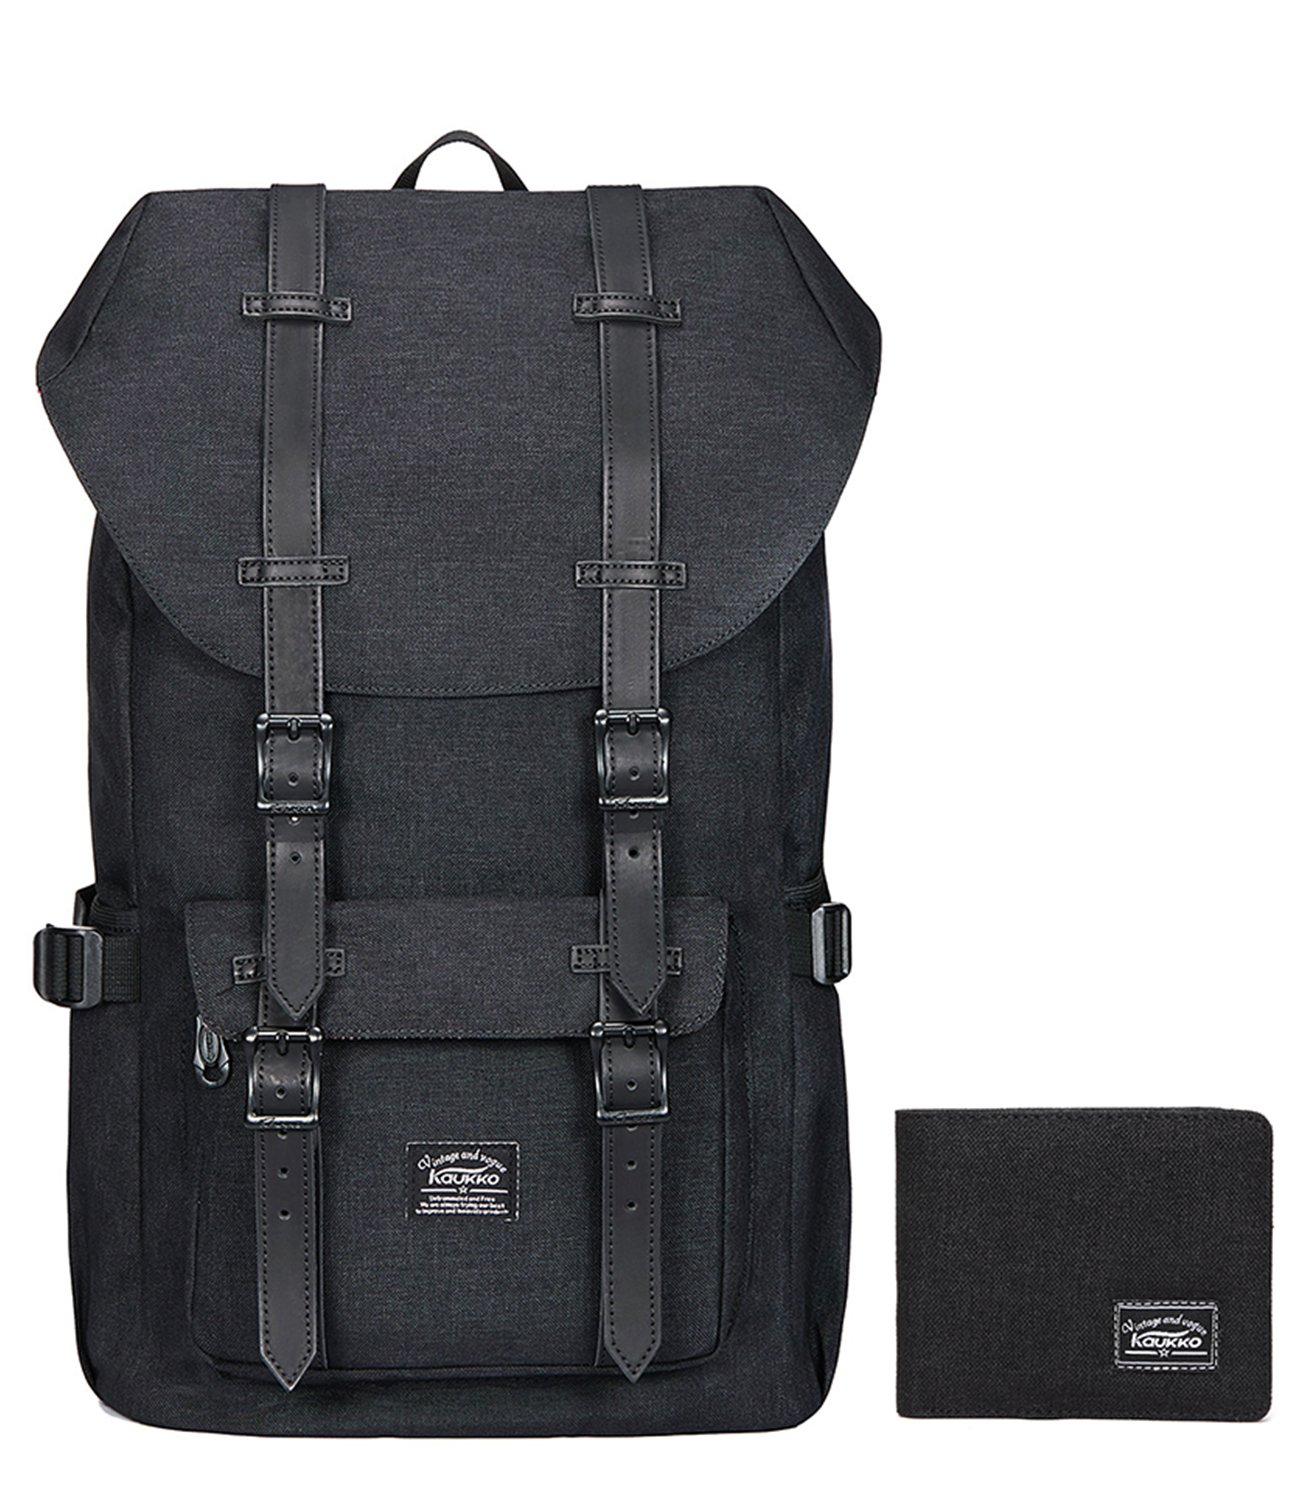 Laptop Outdoor Backpack, Travel Hiking& Camping Rucksack Pack, Casual Large College School Daypack, Shoulder Book Bags Back Fits 15'' Laptop & Tablets by Kaukko (1linen Black[2PC])